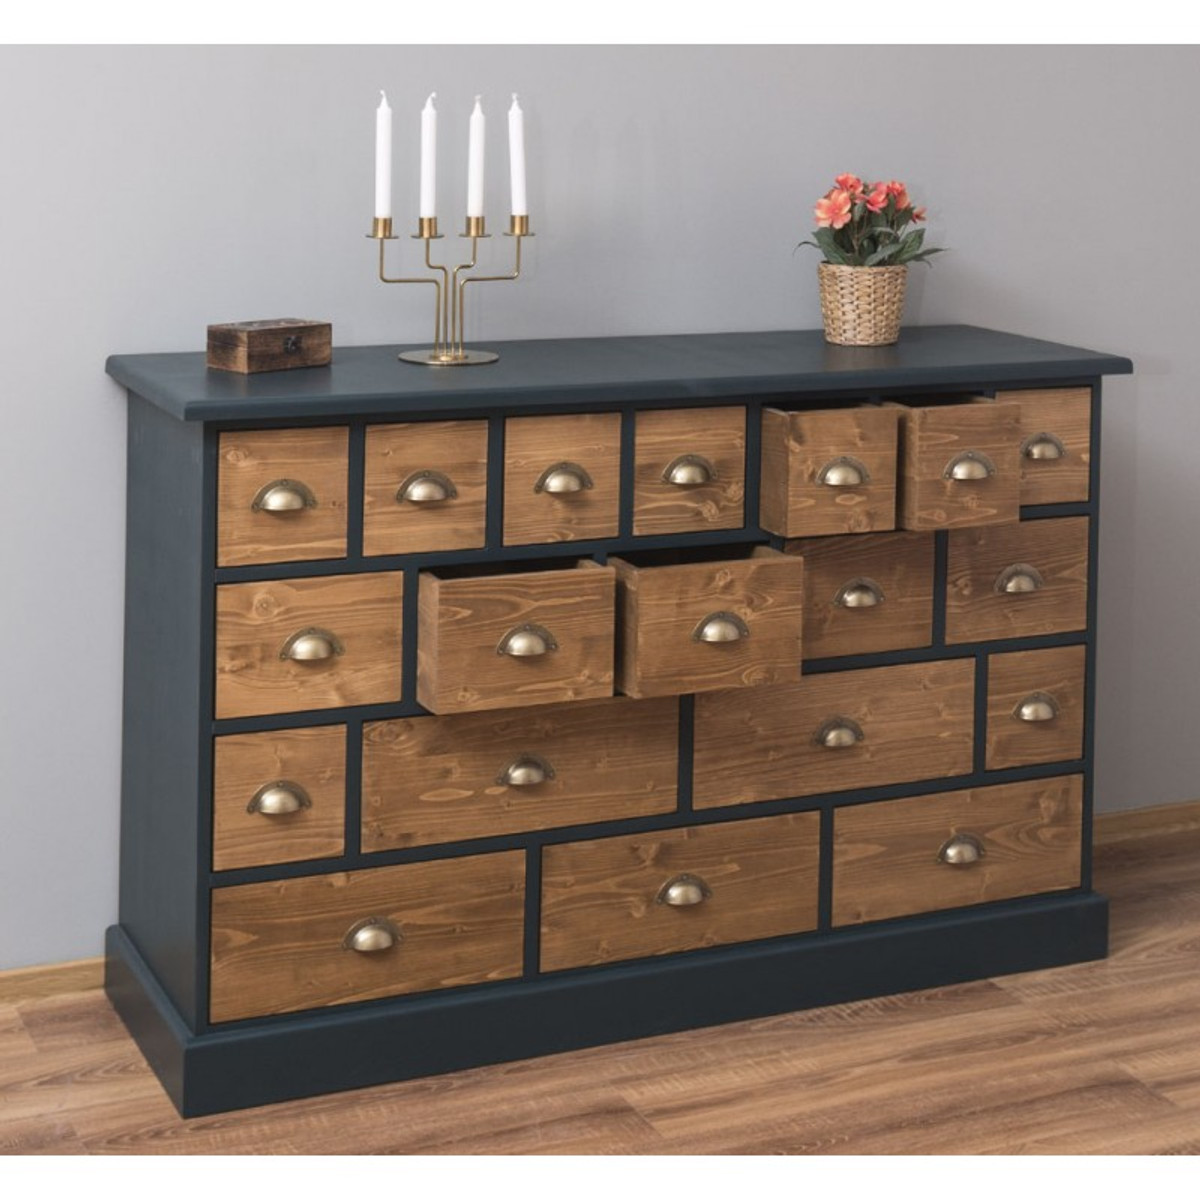 Casa Padrino Country Style Chest Of